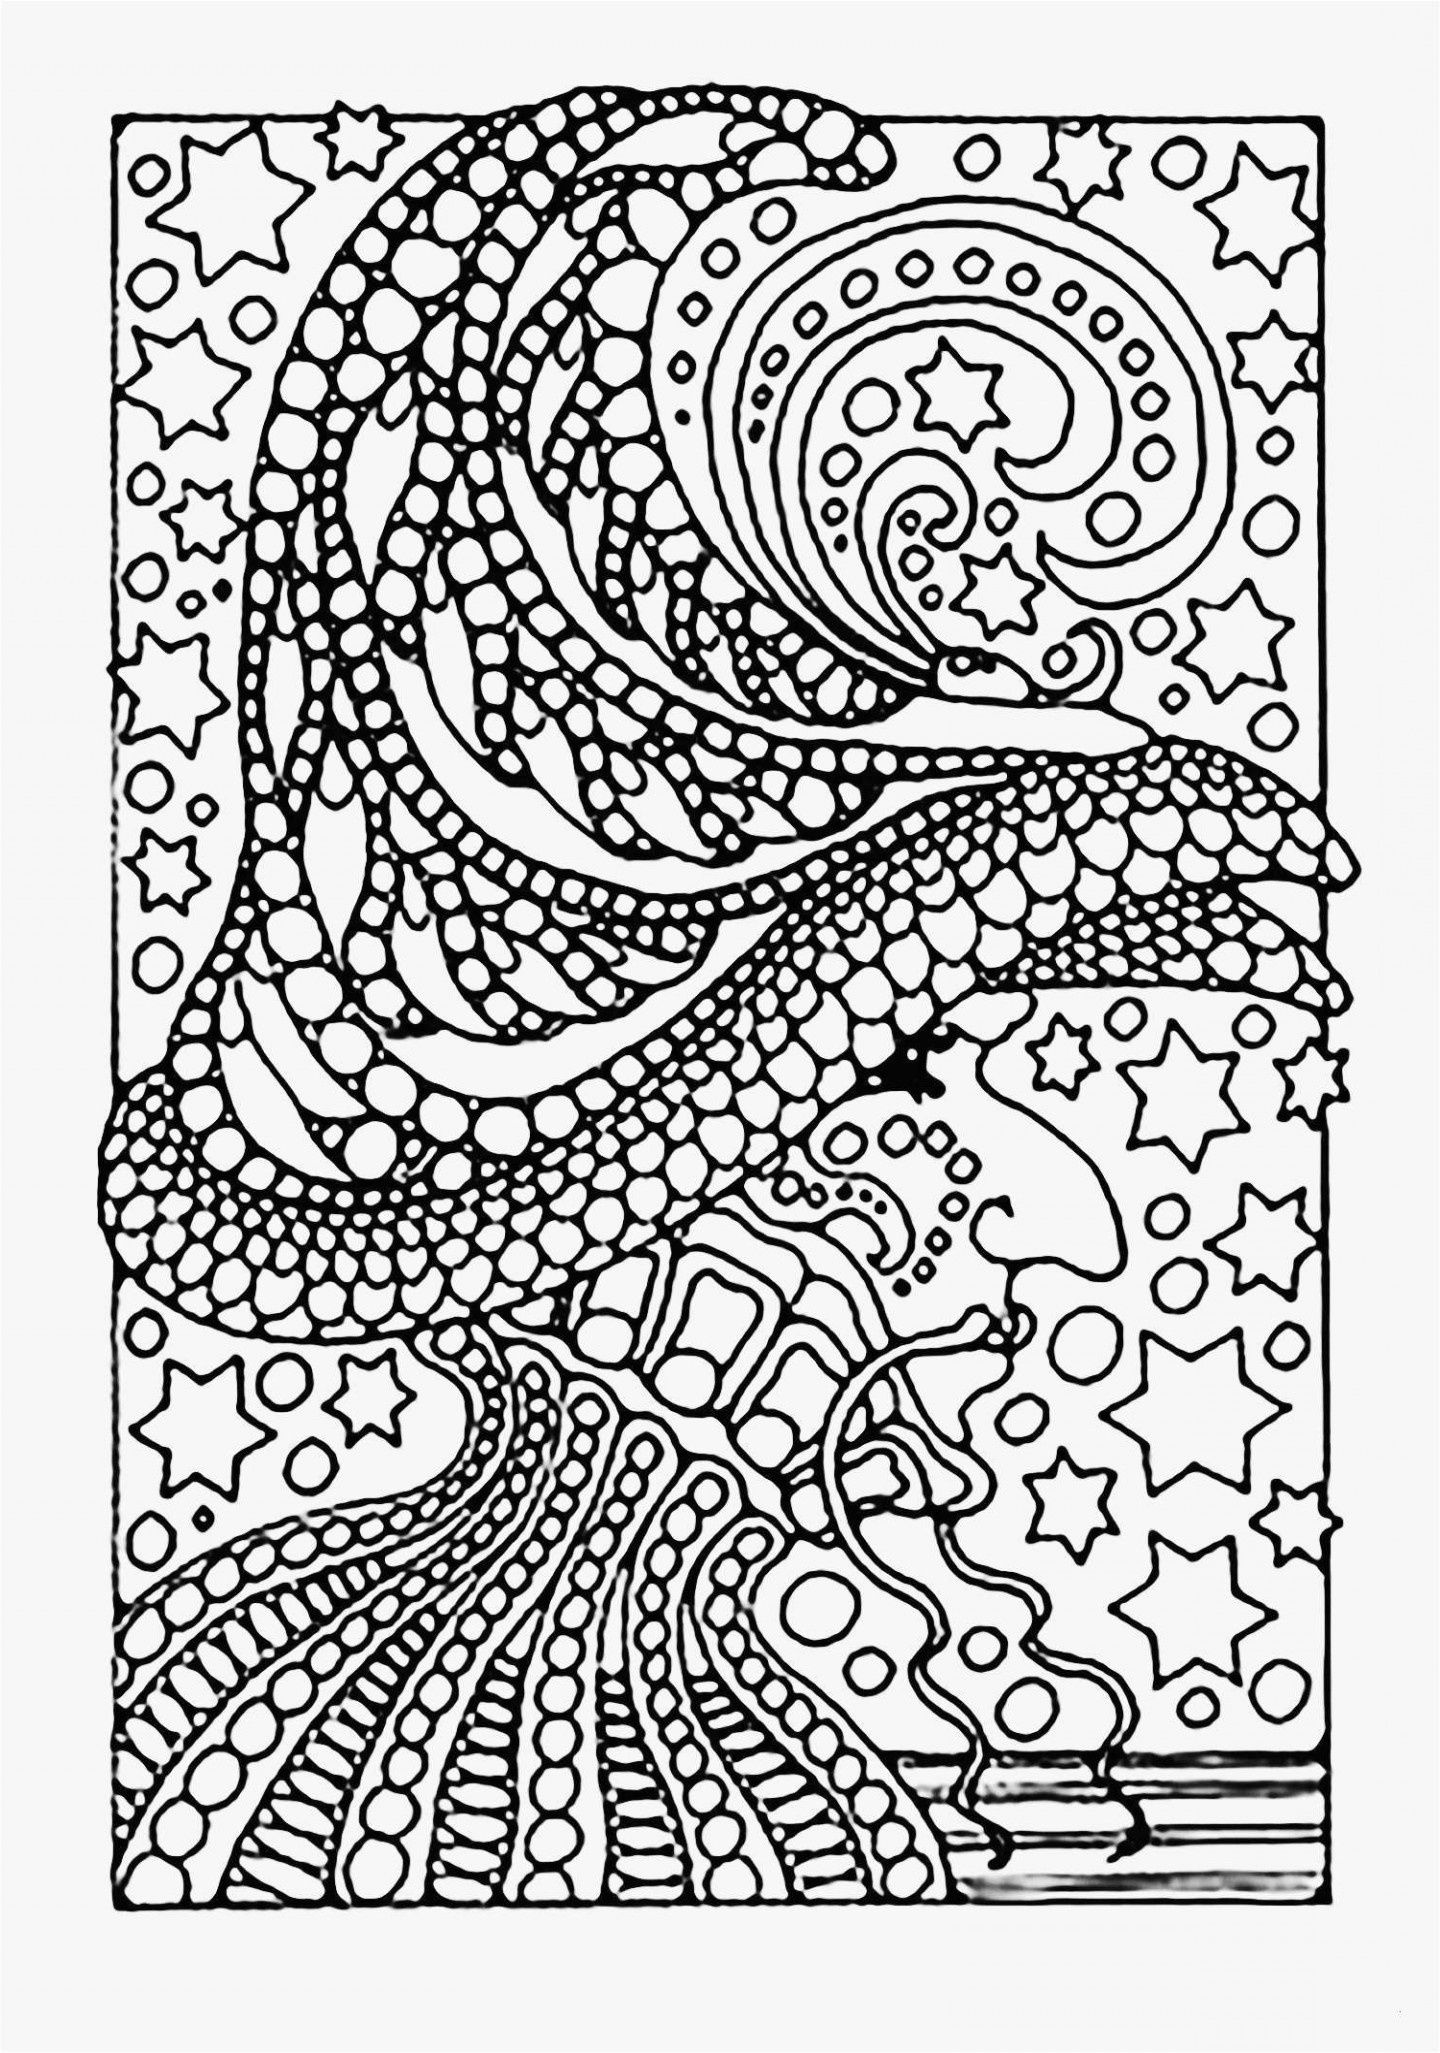 29 Cool Stock Of Six Kingdoms Coloring Worksheet Mermaid Coloring Pages Animal Coloring Pages Coloring Books